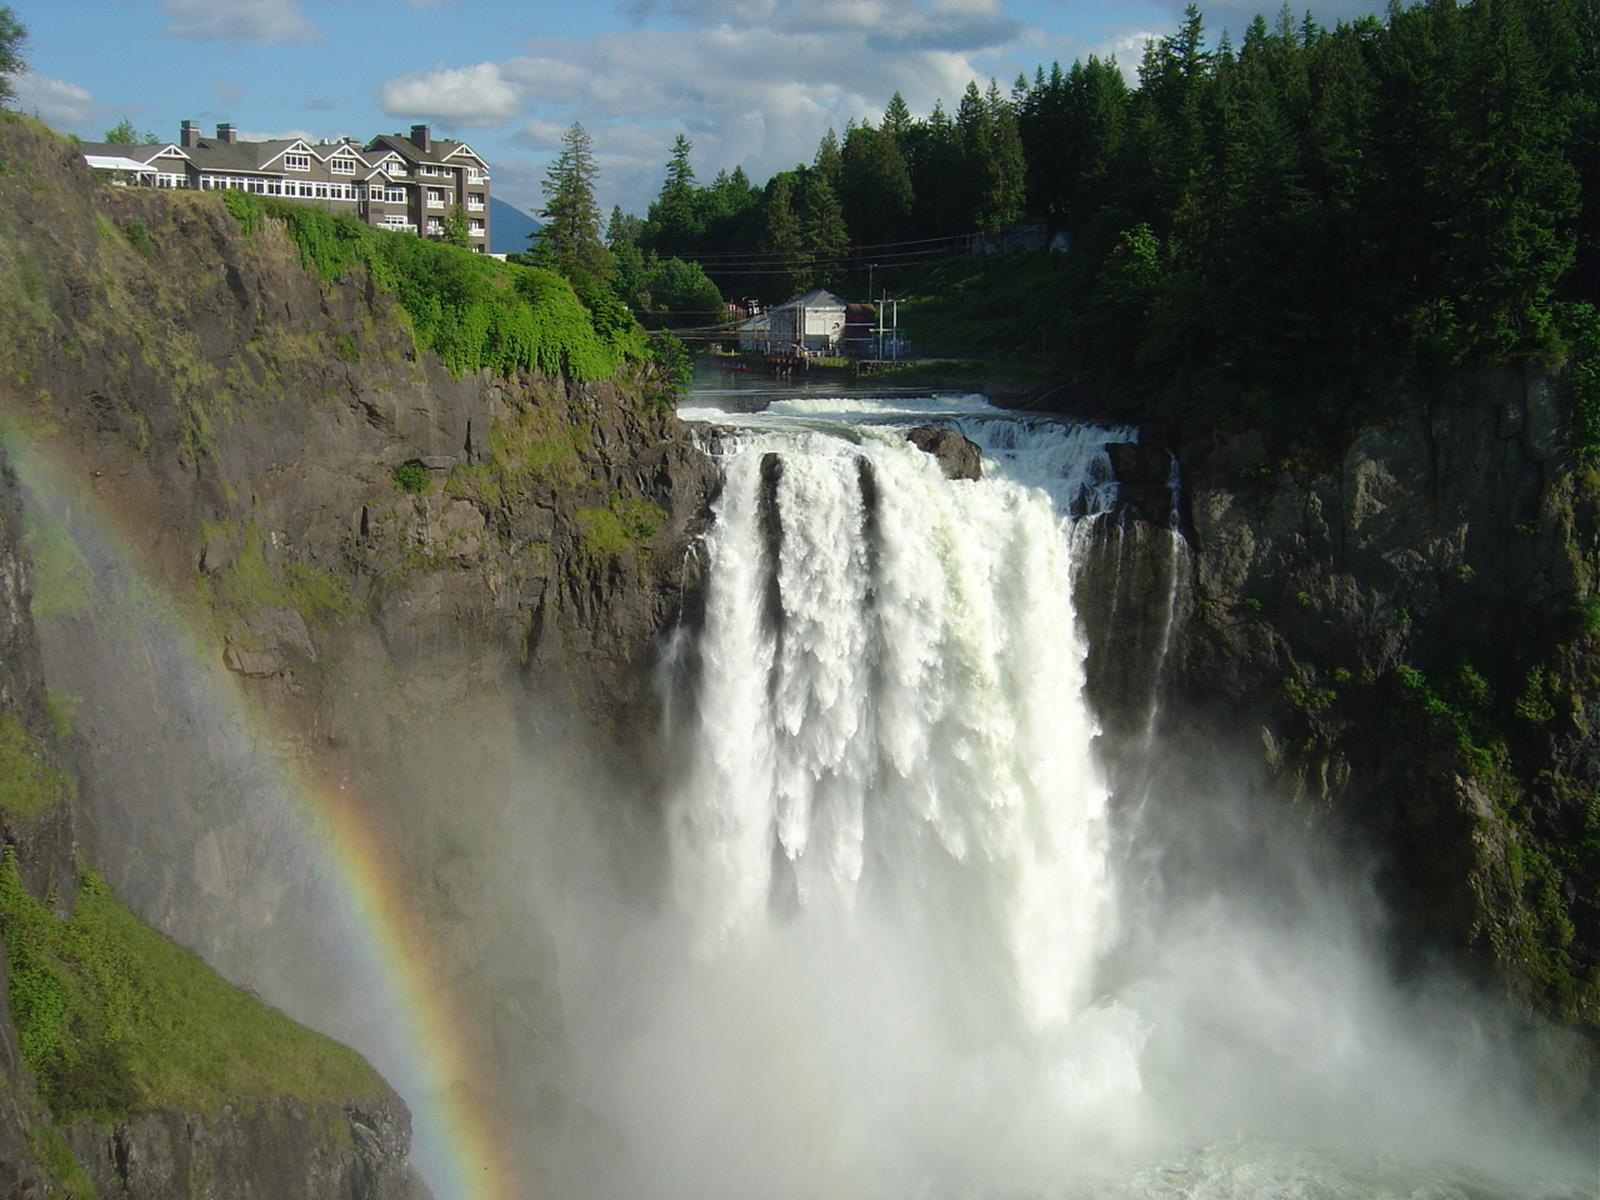 Snoqualmie Falls. Credit Cefka at en.wikipedia.